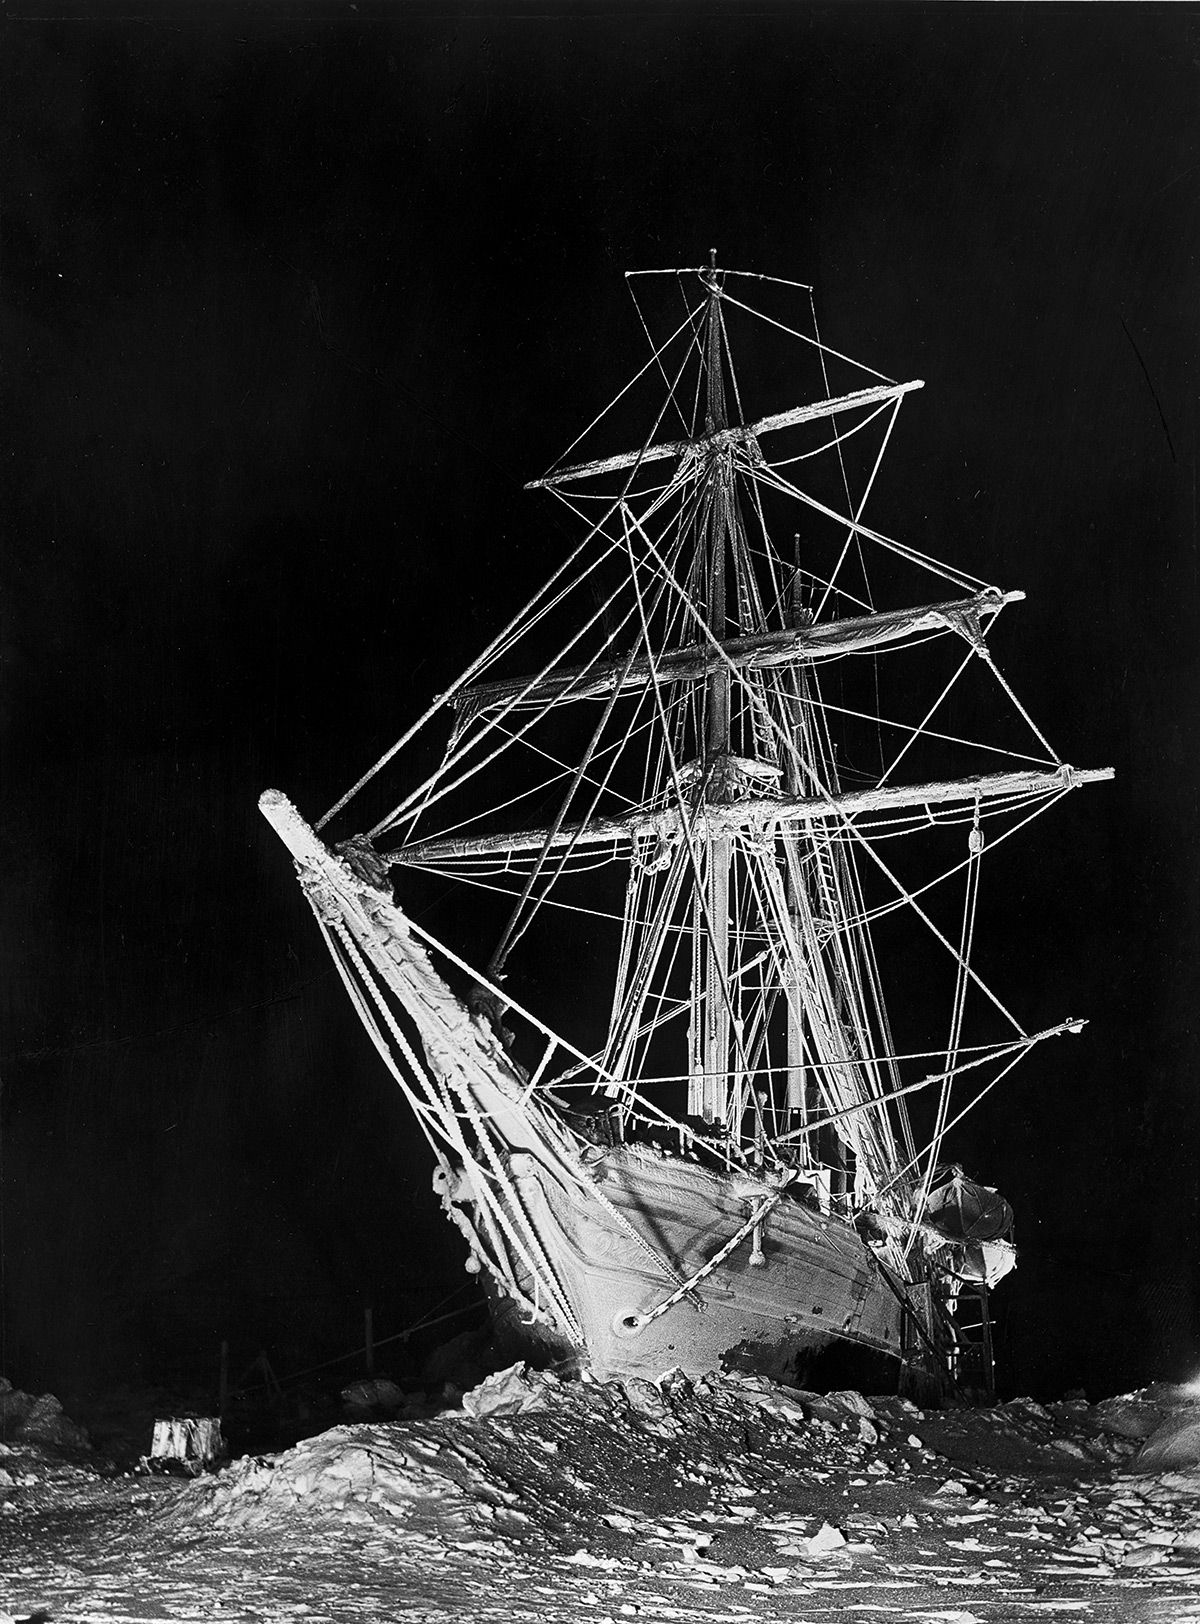 c6e8a01f6b Newly Restored Photos of Shackleton's Fateful Antarctic Voyage Offer  Unprecedented Details of Survival | Compelling Images | Ghost ship, Ship,  Sailing ships